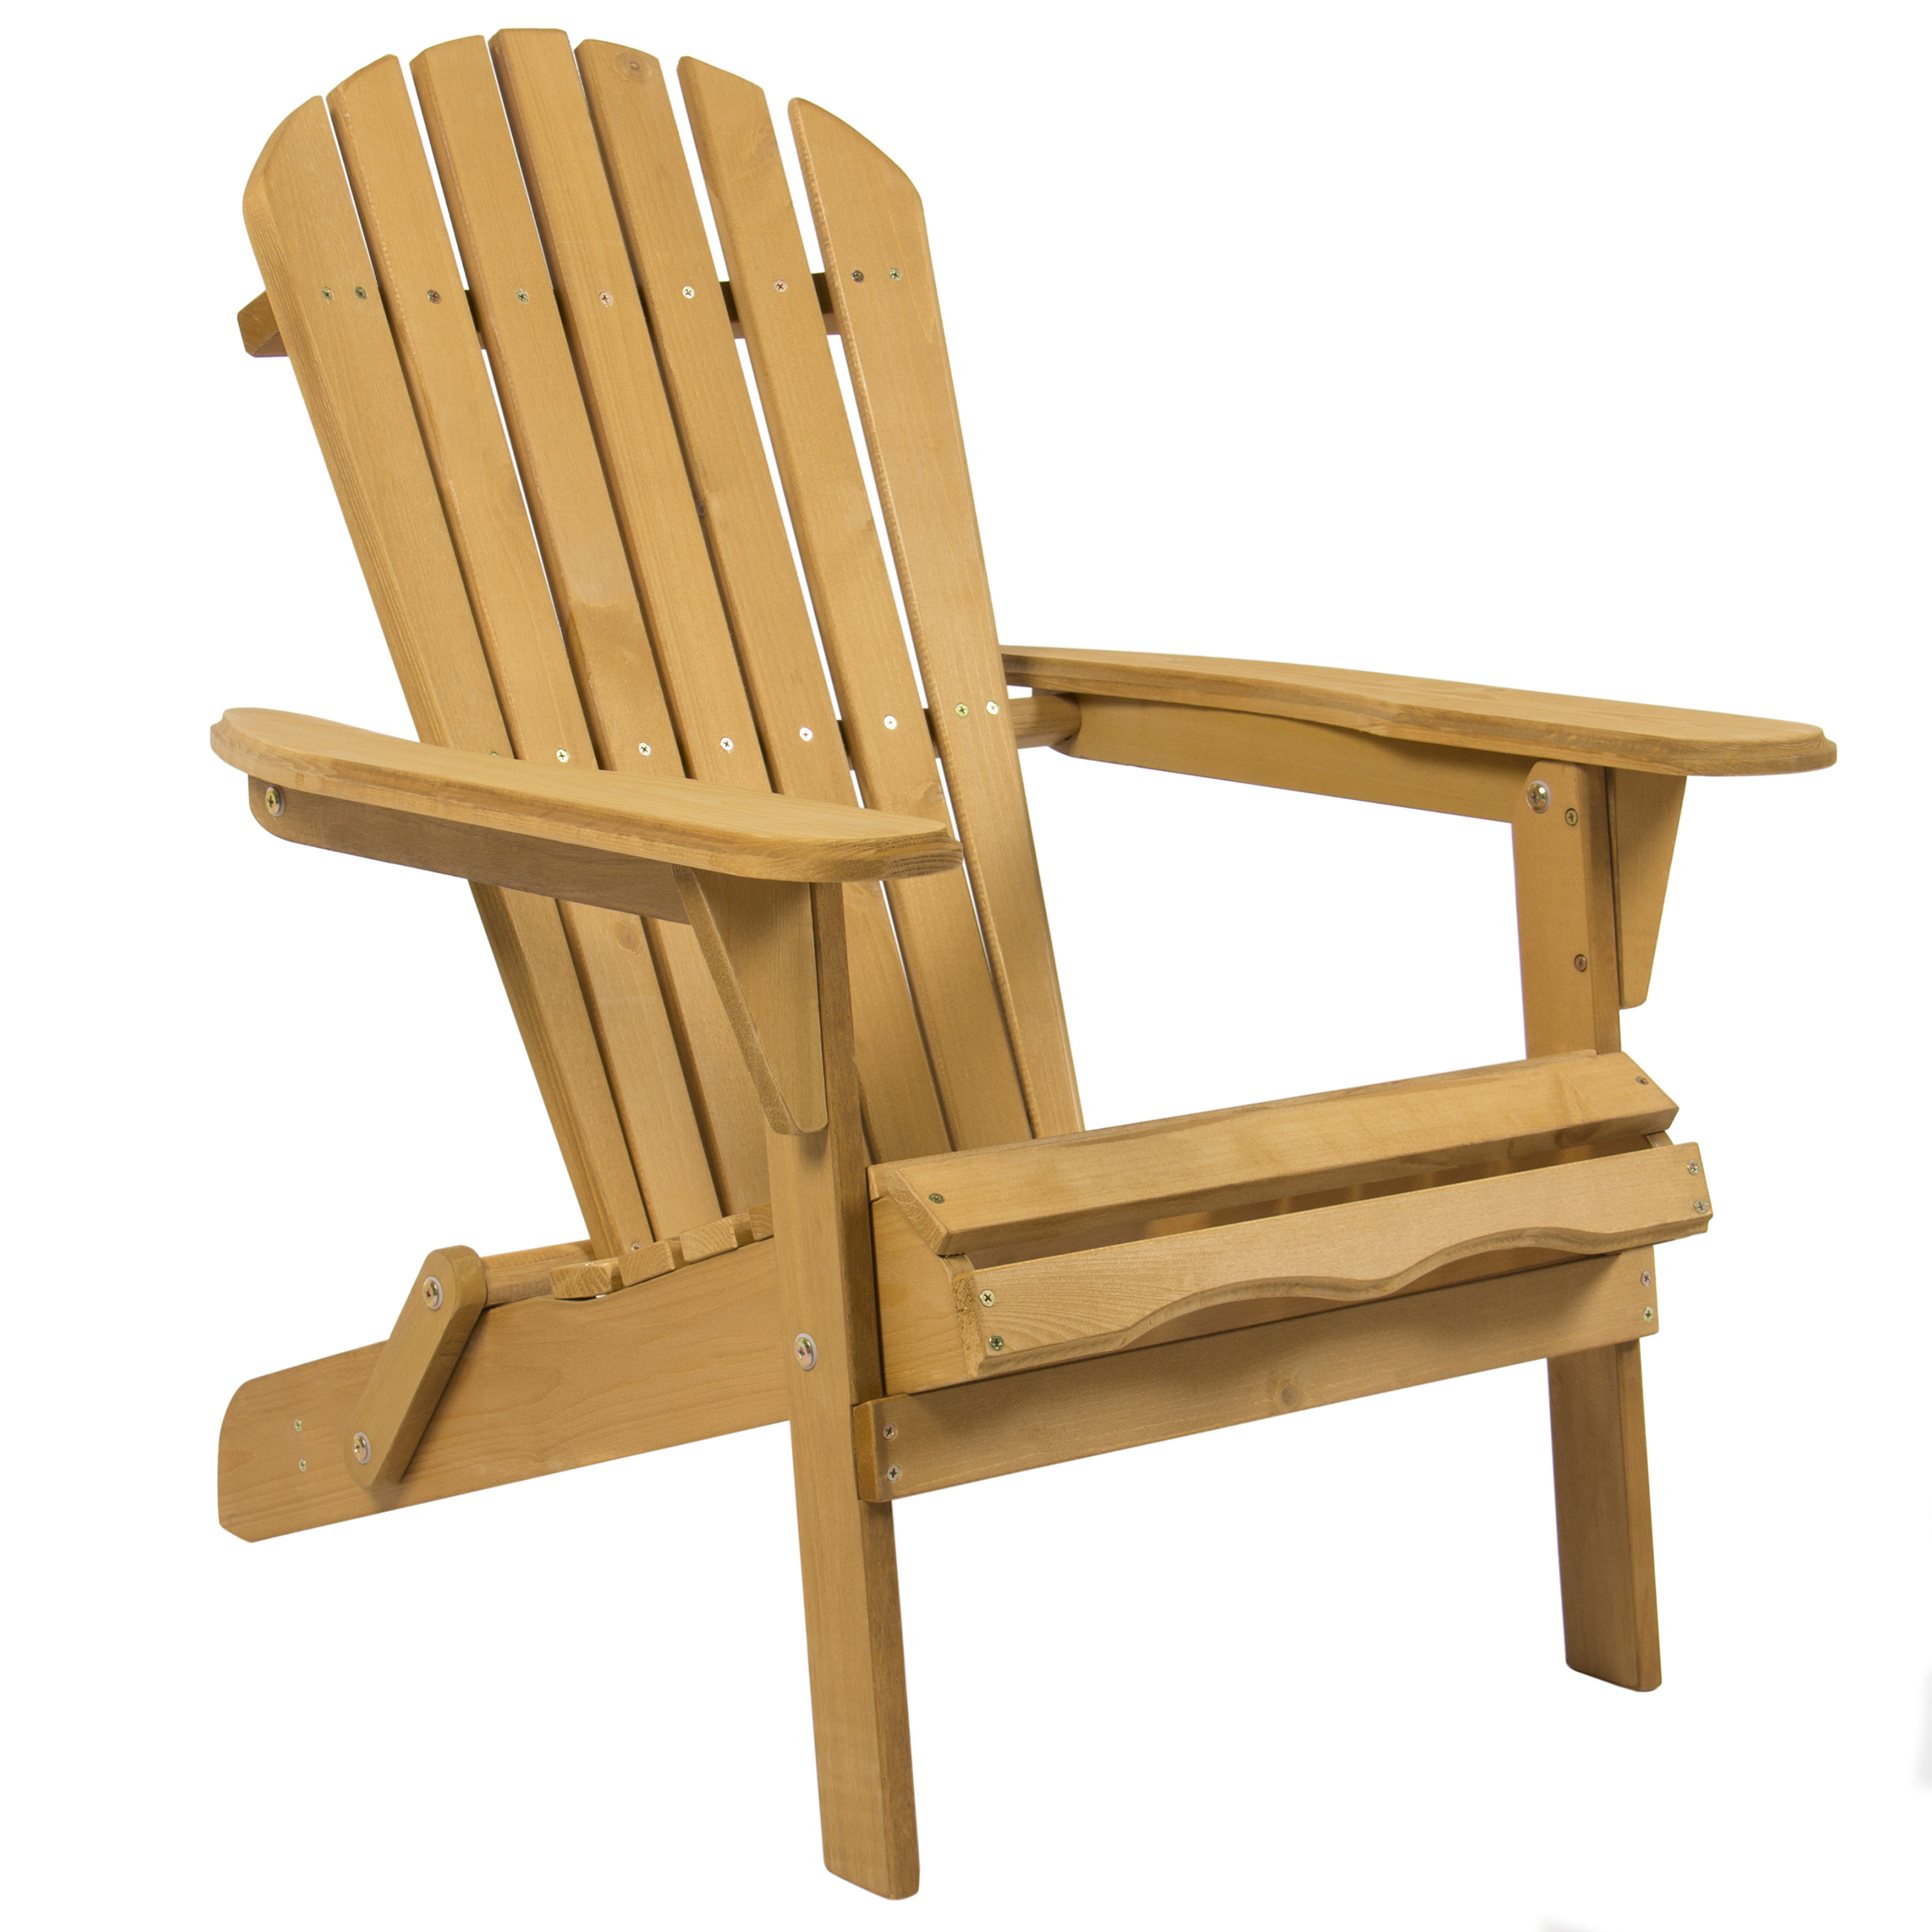 Merveilleux Best Choice Products Outdoor Adirondack Wood Chair Foldable Patio Lawn Deck  Garden Furniture   Walmart.com